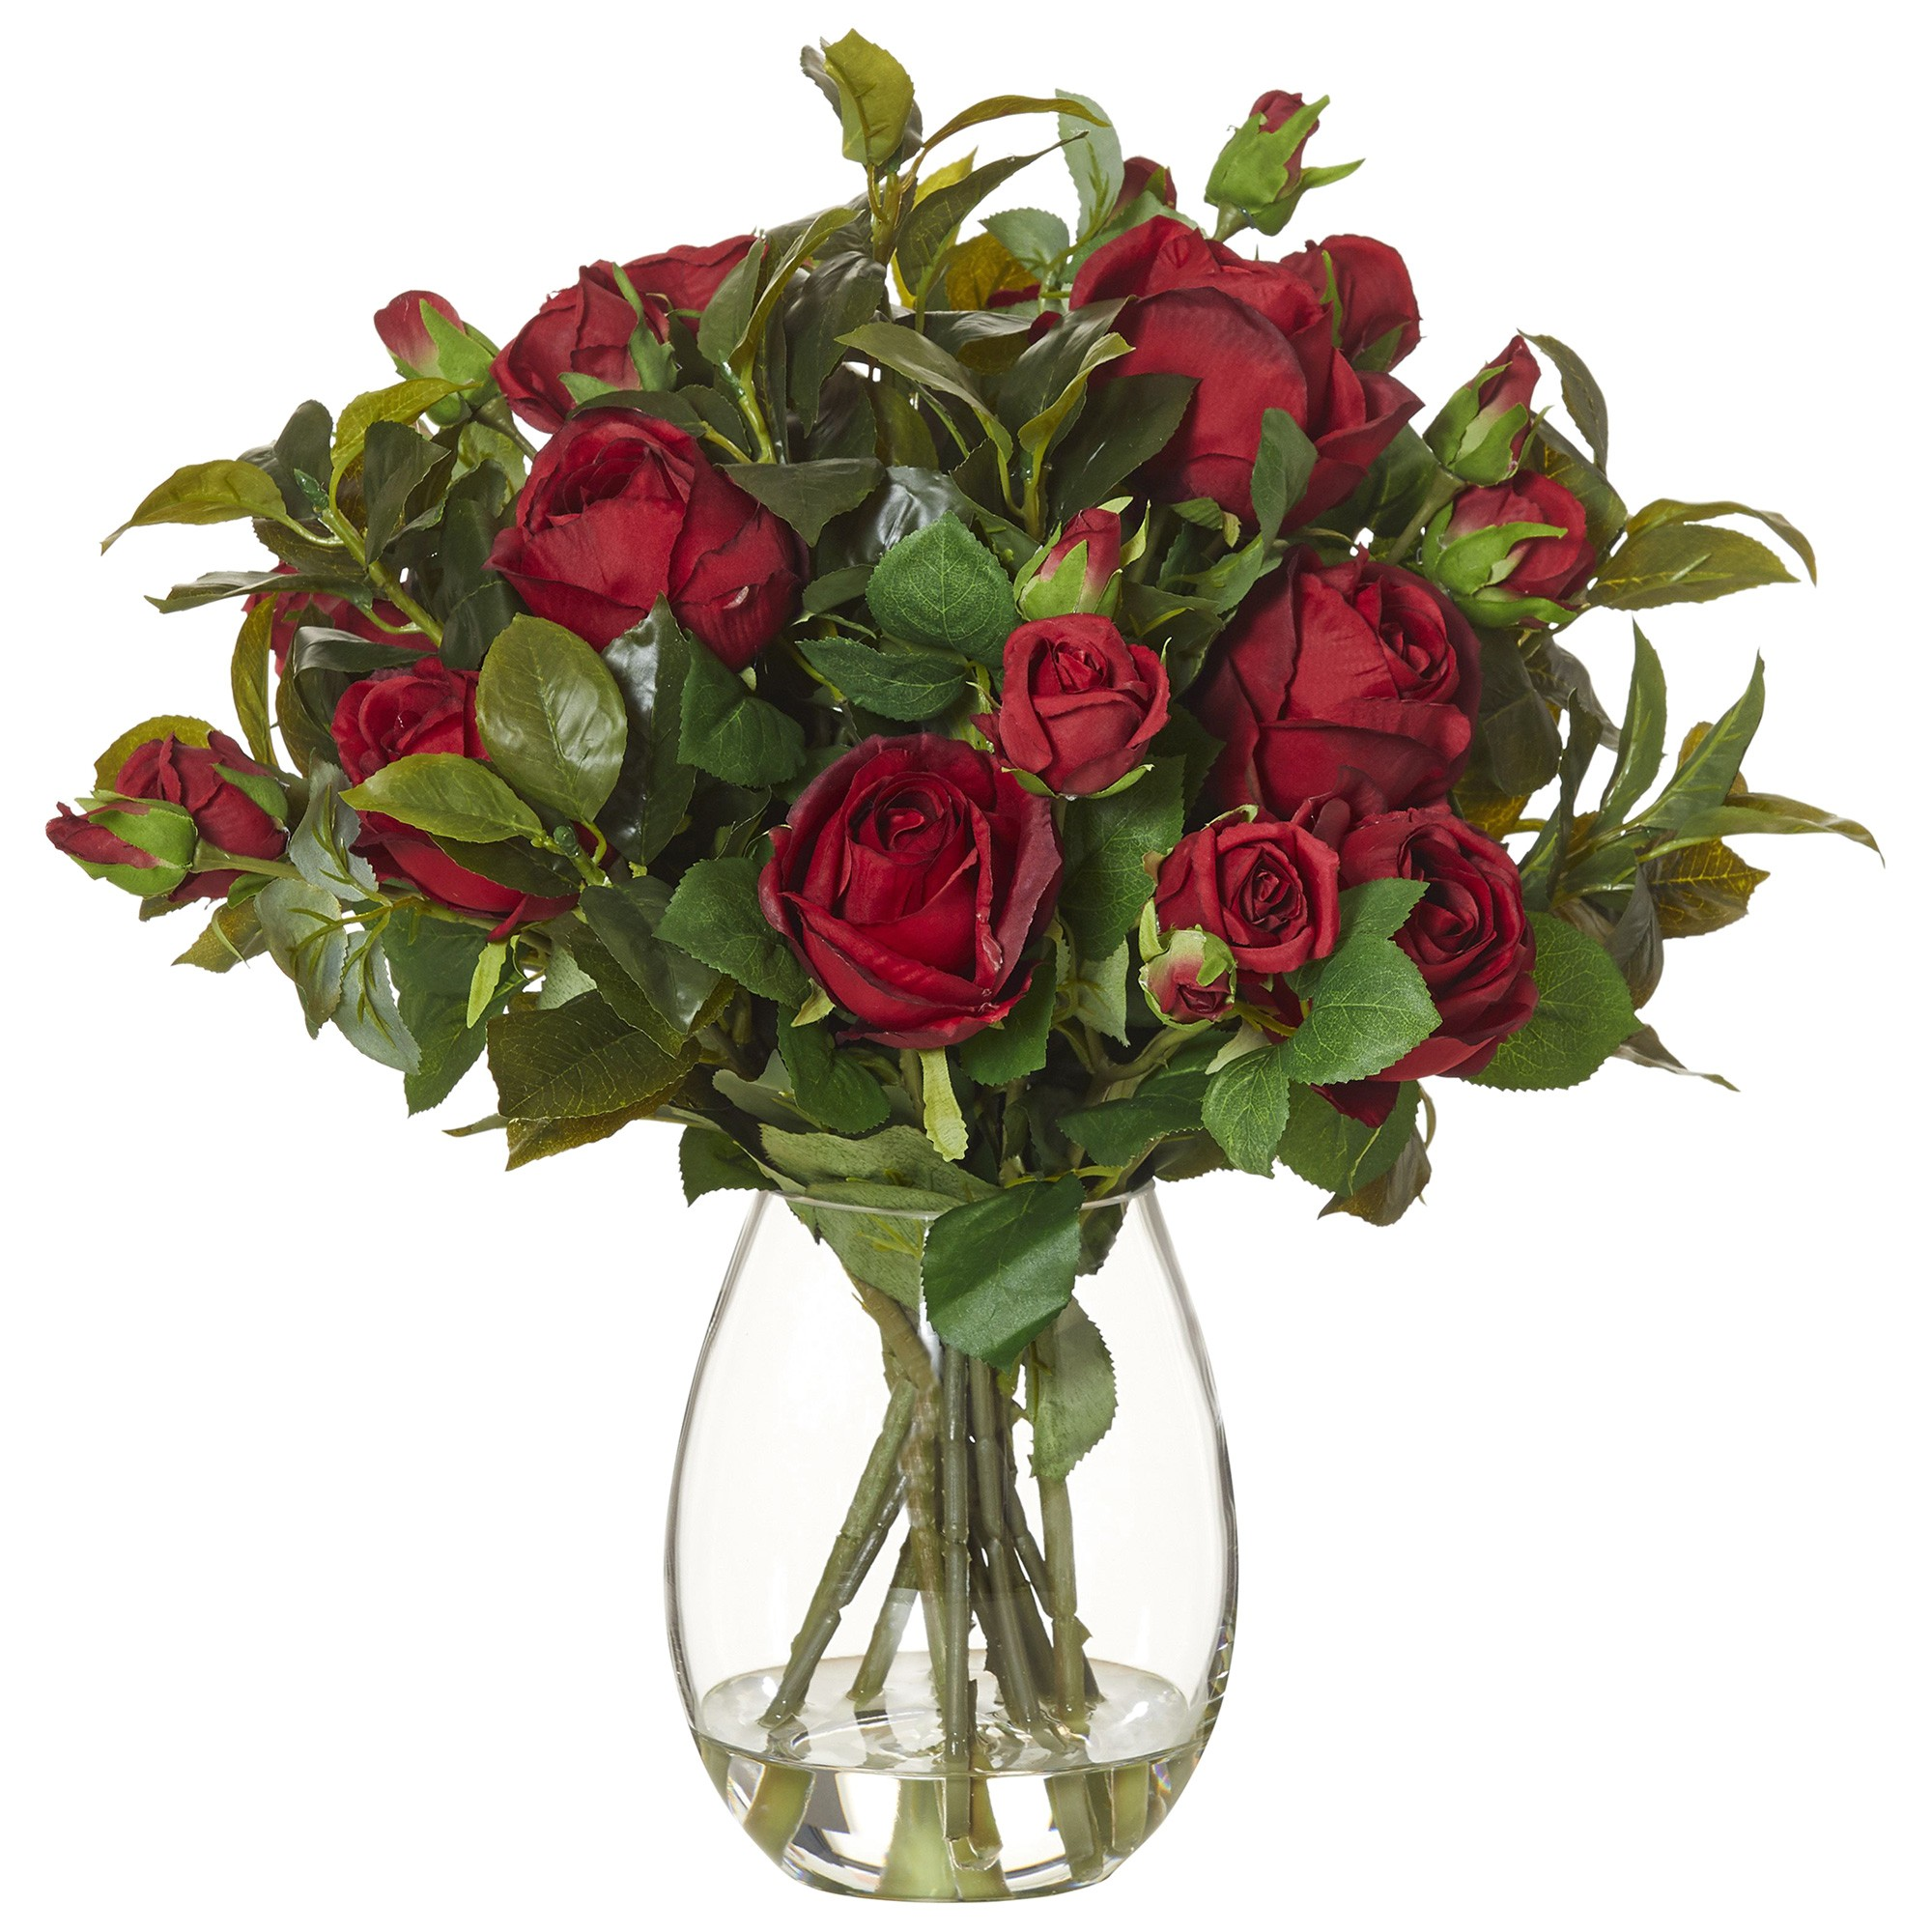 Artificial Garden Rose Mix in Claire Vase, Small, Red Flower